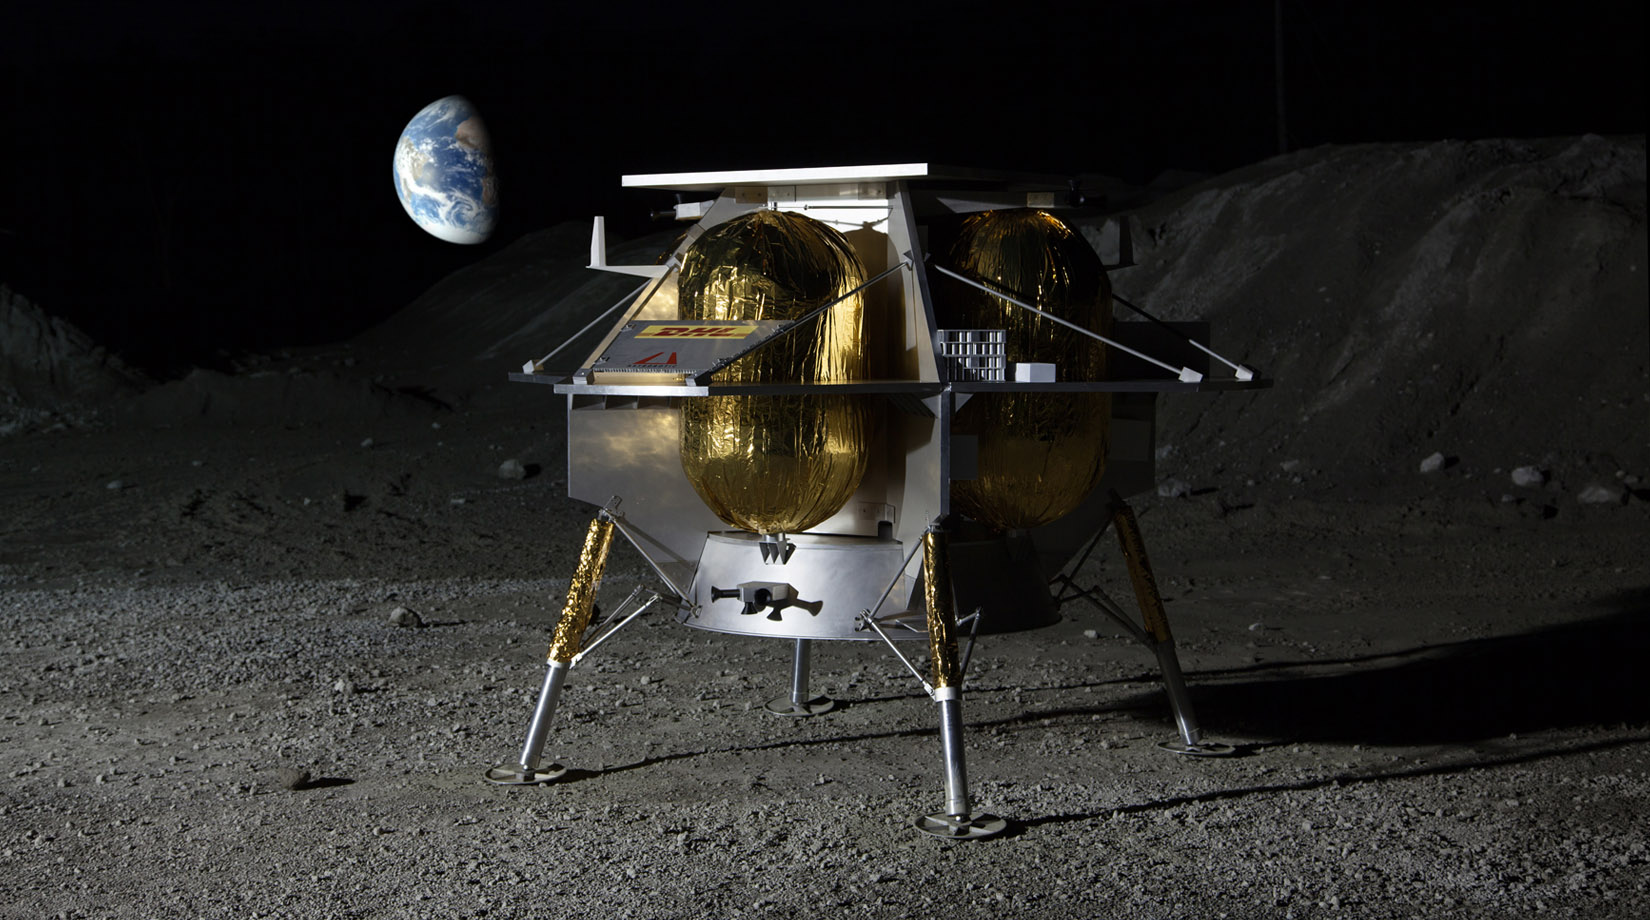 Astrobotic Selects Dynetics as Propulsion Provider for the Peregrine Lunar Lander thumbnail image